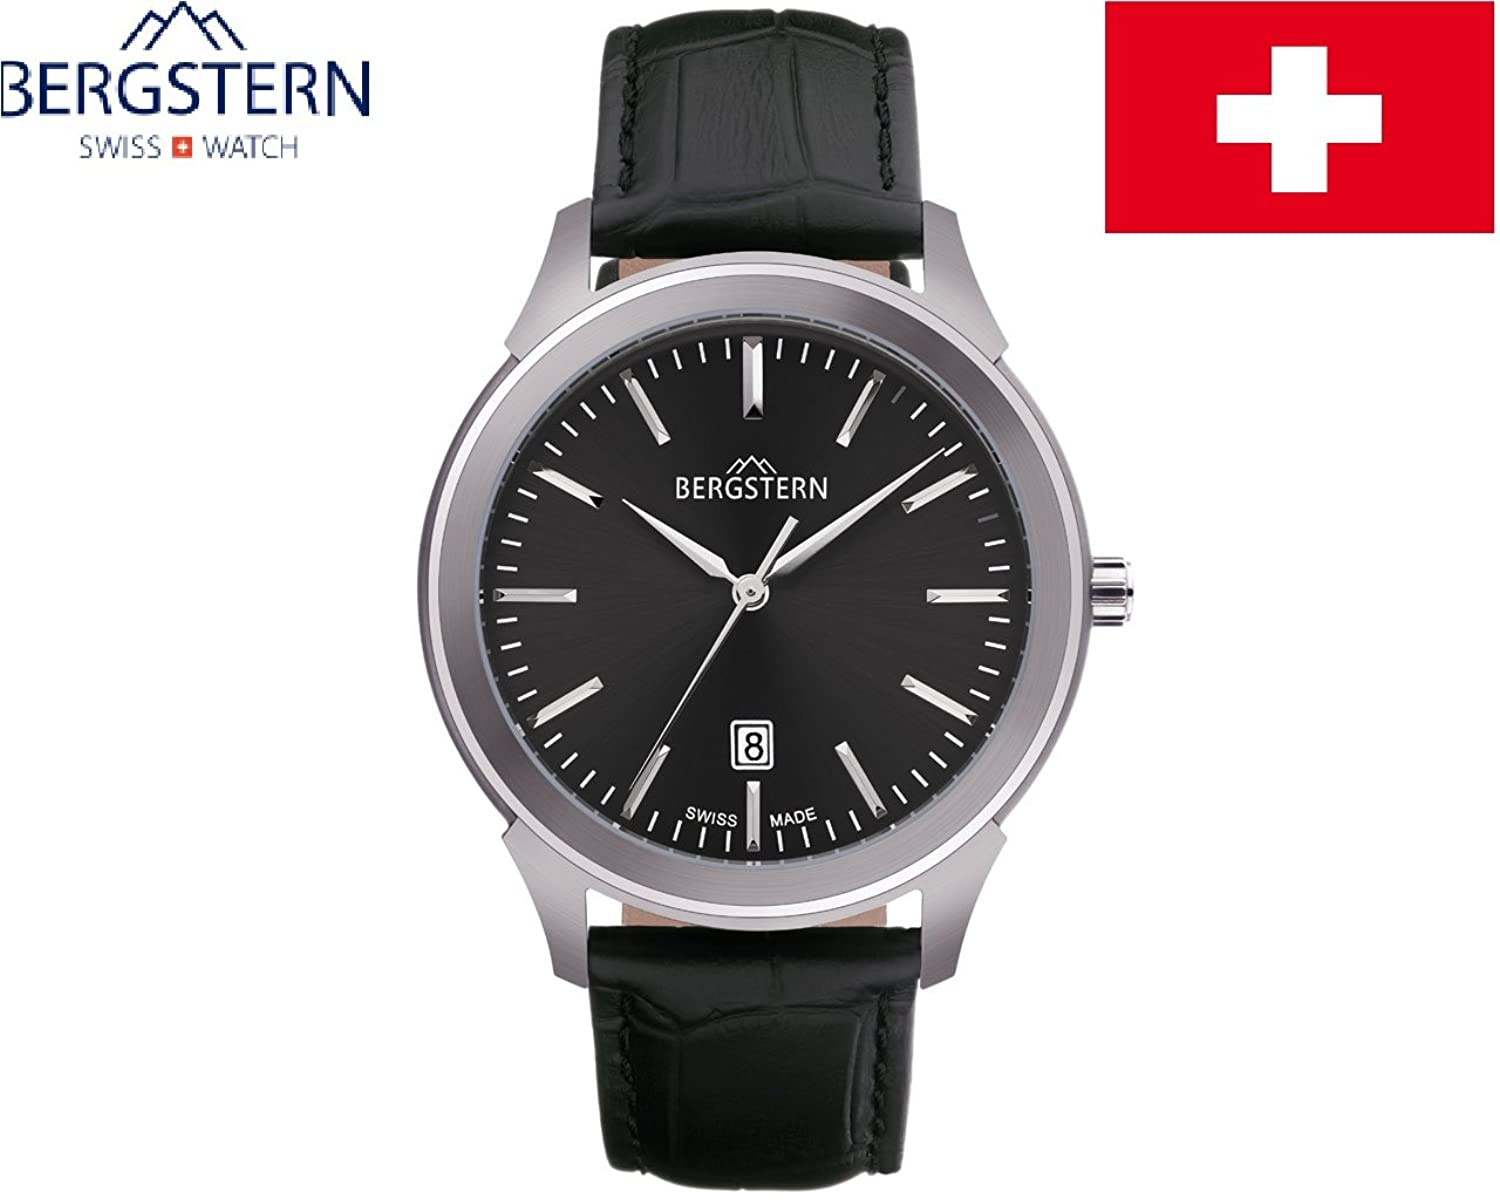 ARMBANDUHR MEN'S COLLECTION HARMONY BERGSTERN B016G083 whatch SWISS MADE hoher QualitÄt MADE IN SVIZZERA.Cinturino